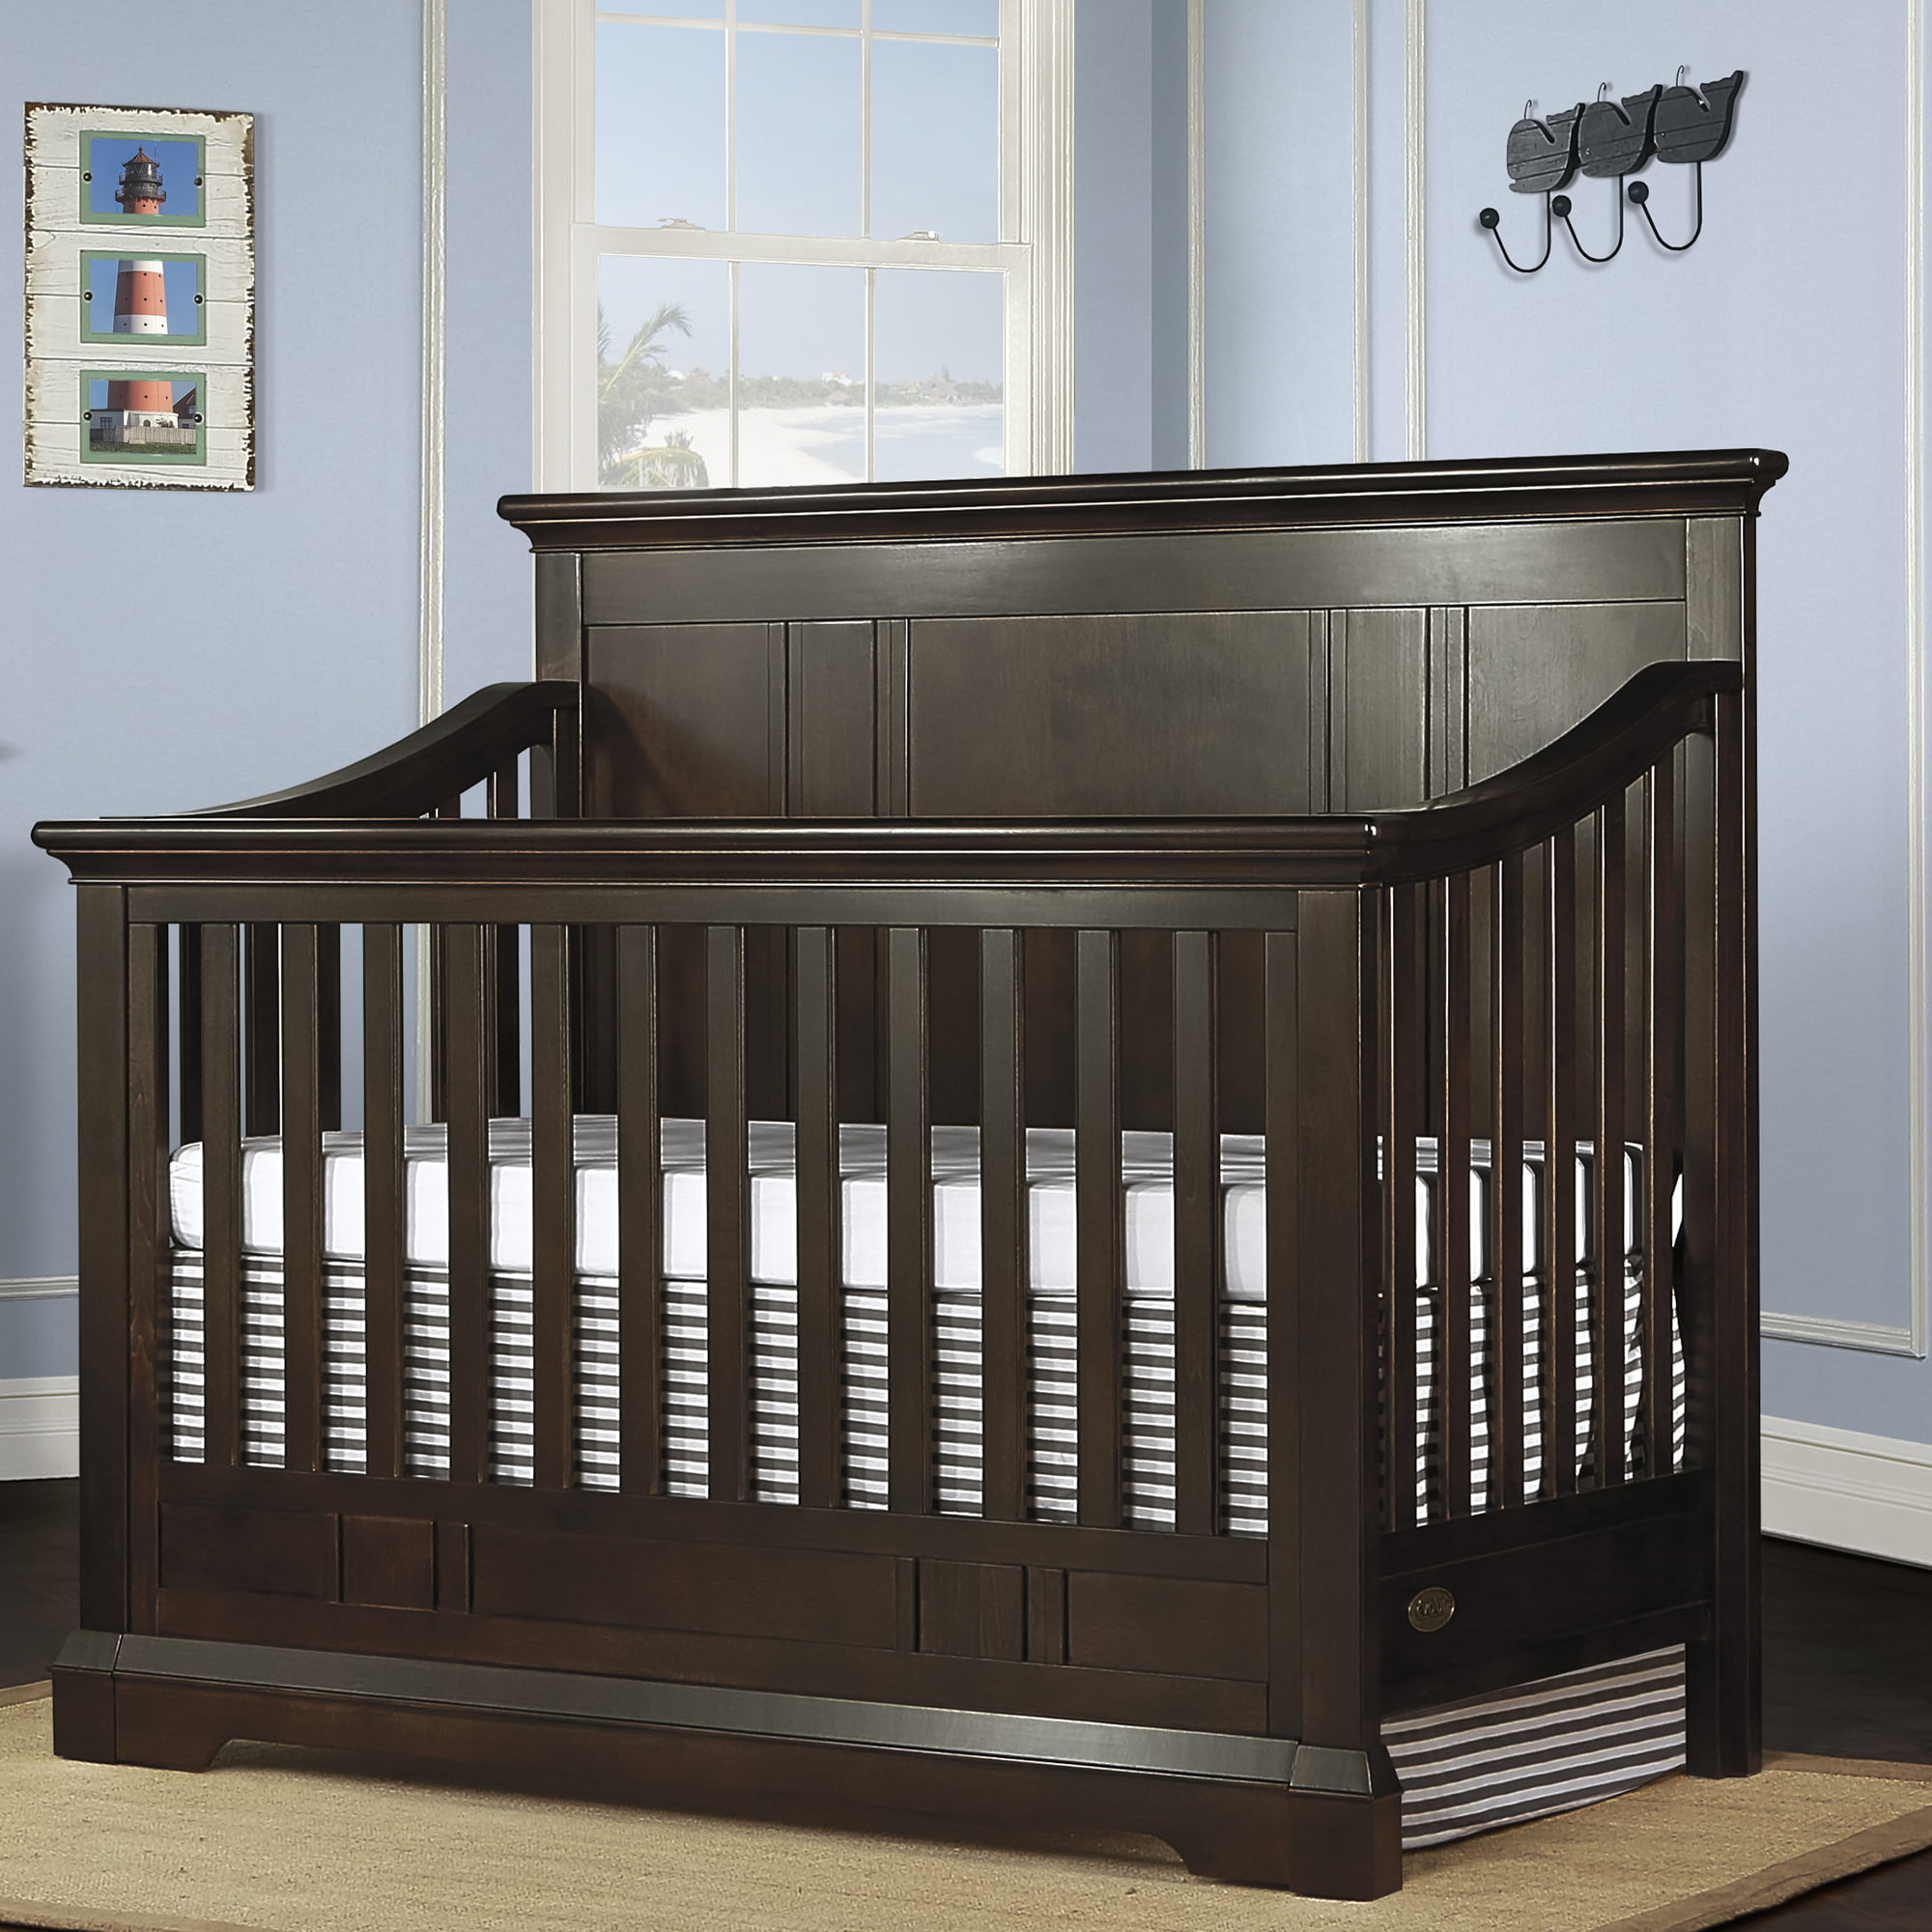 Evolur Parker 5-in-1 Convertible Crib, White and Navy by Evolur